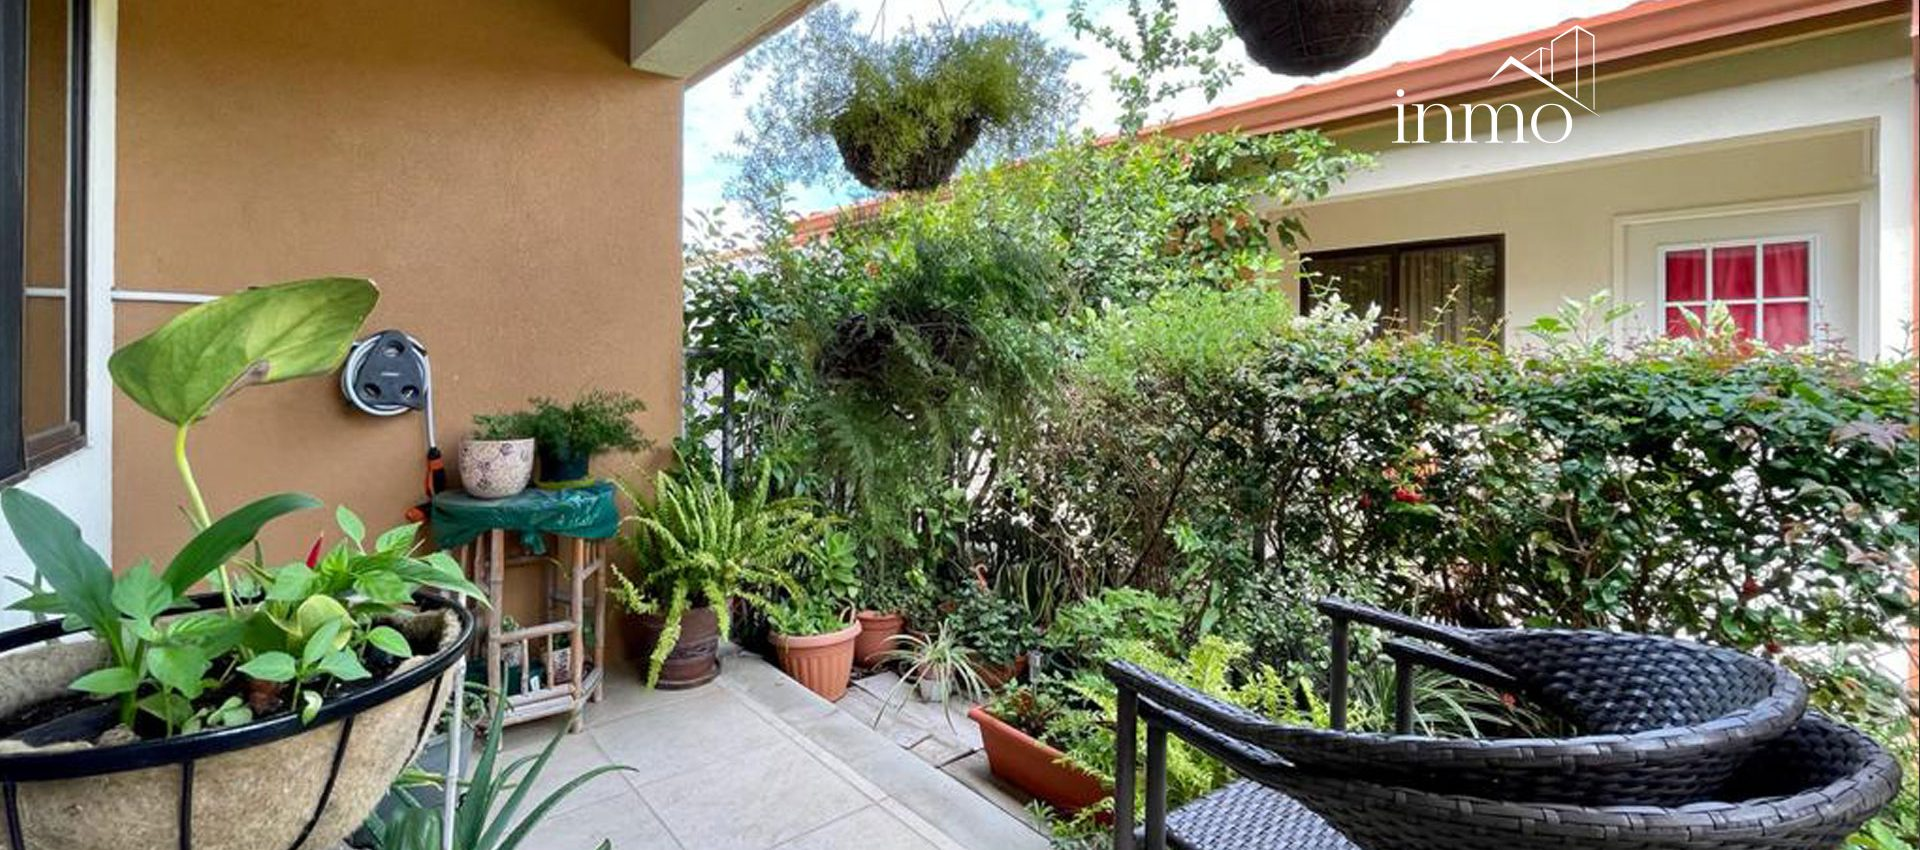 108-Patio-3-3-73-TO